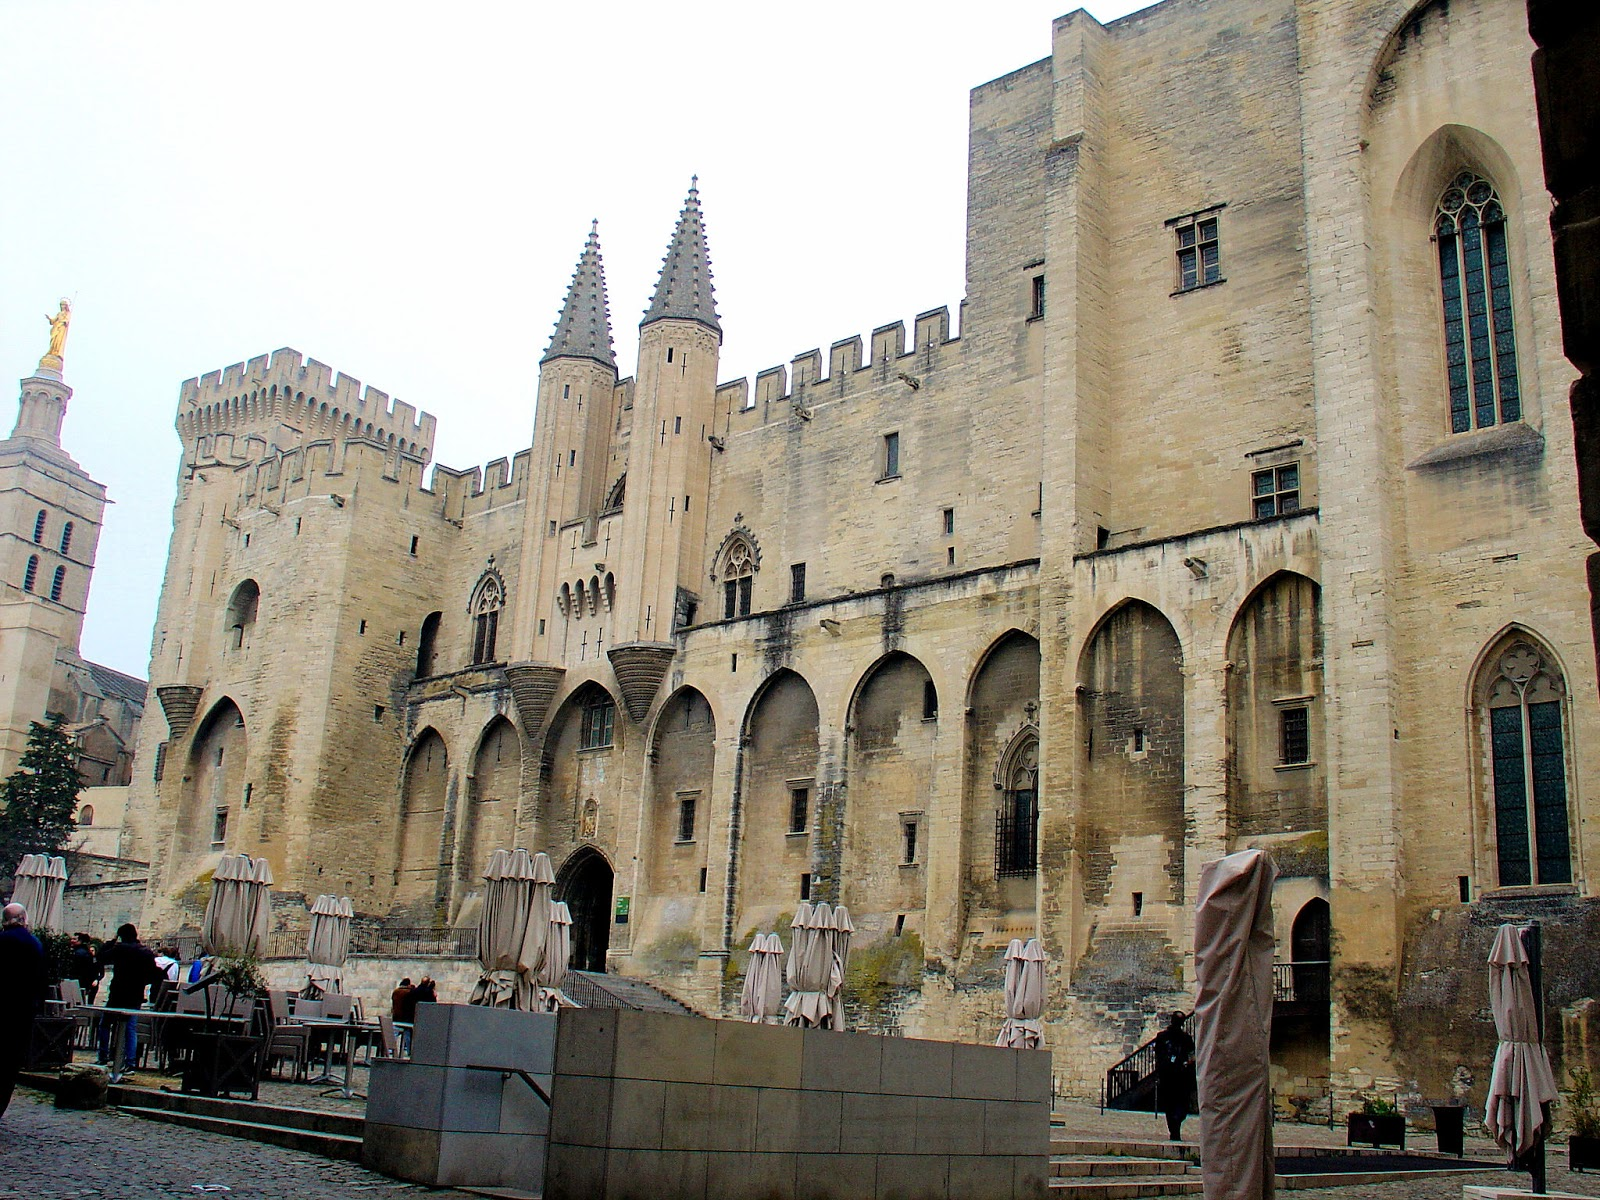 Welcome to the Palais des Papes or Palace of the Popes in Avignon, France. All photography unless noted is the property of the EuroTravelogue™. Unauthorized use is prohibited.